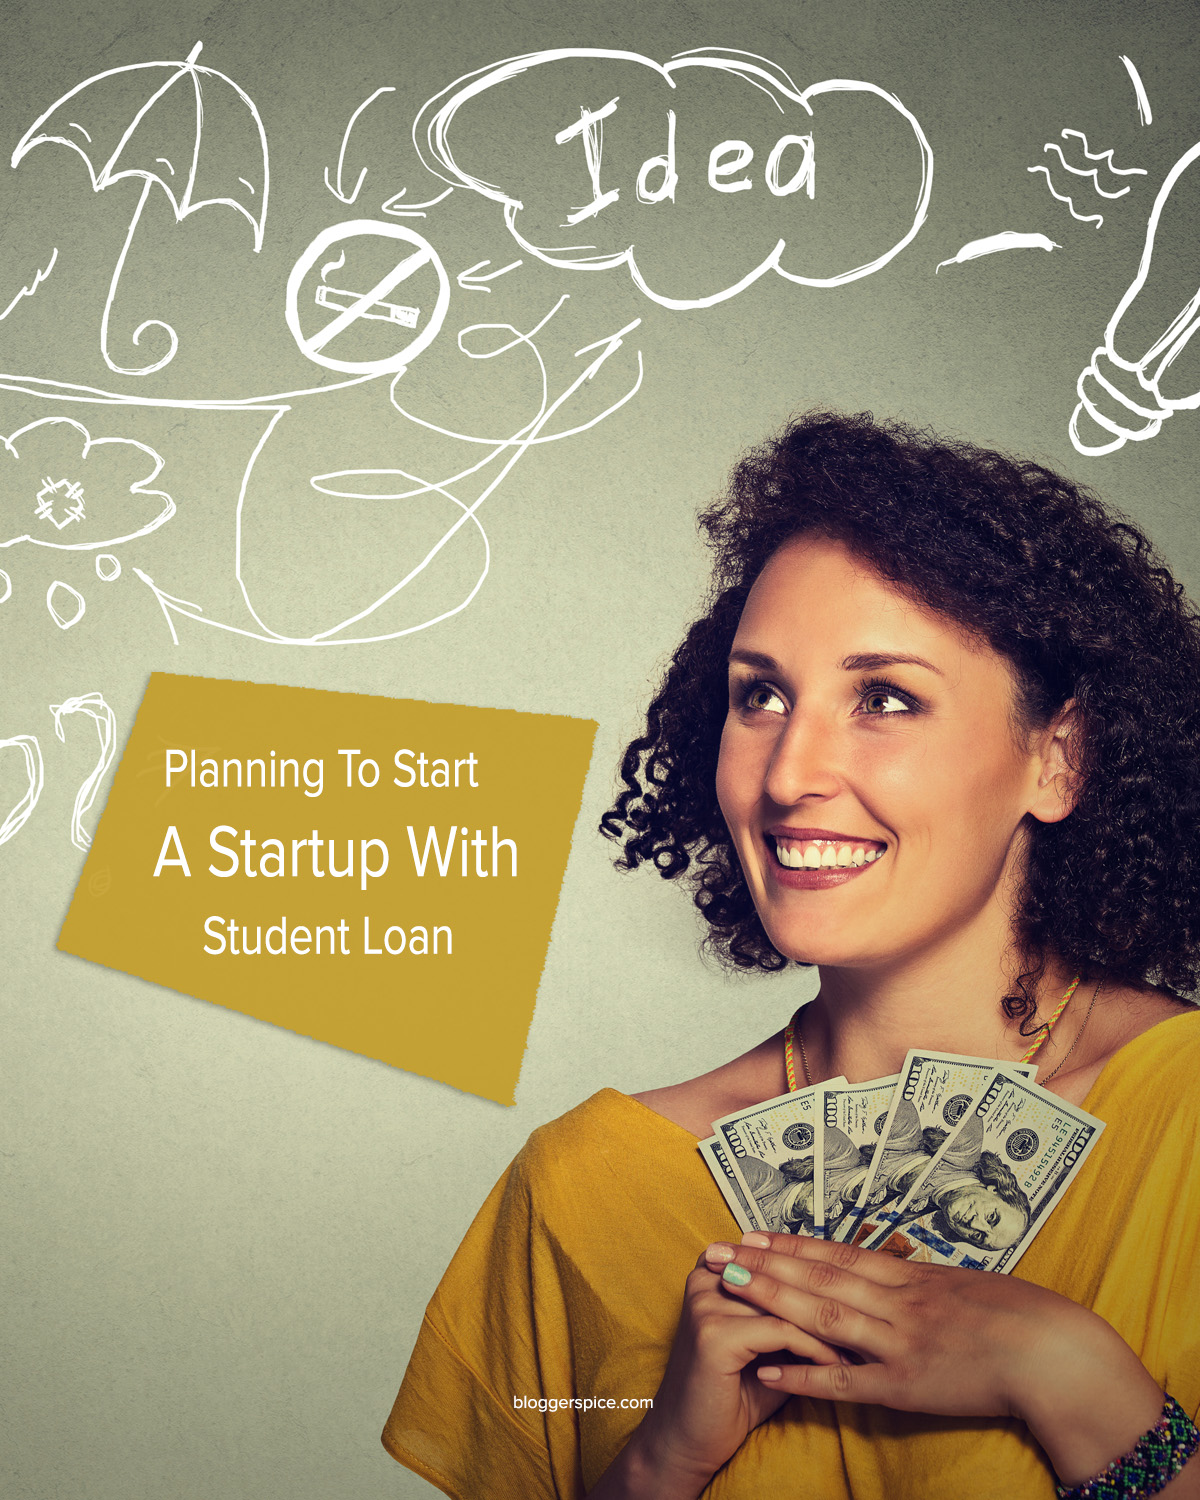 Starting a Successful Business While Having Student Loan Debt